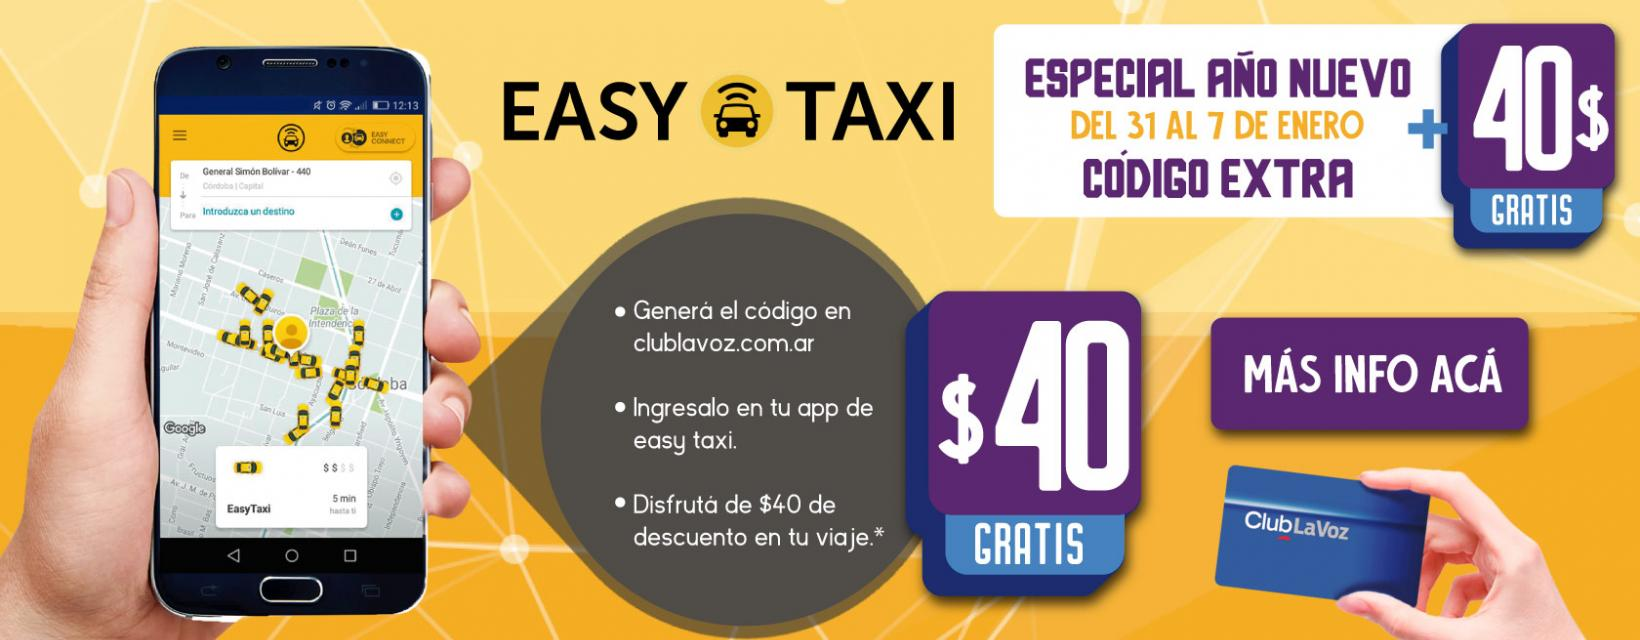 Easy taxi banner